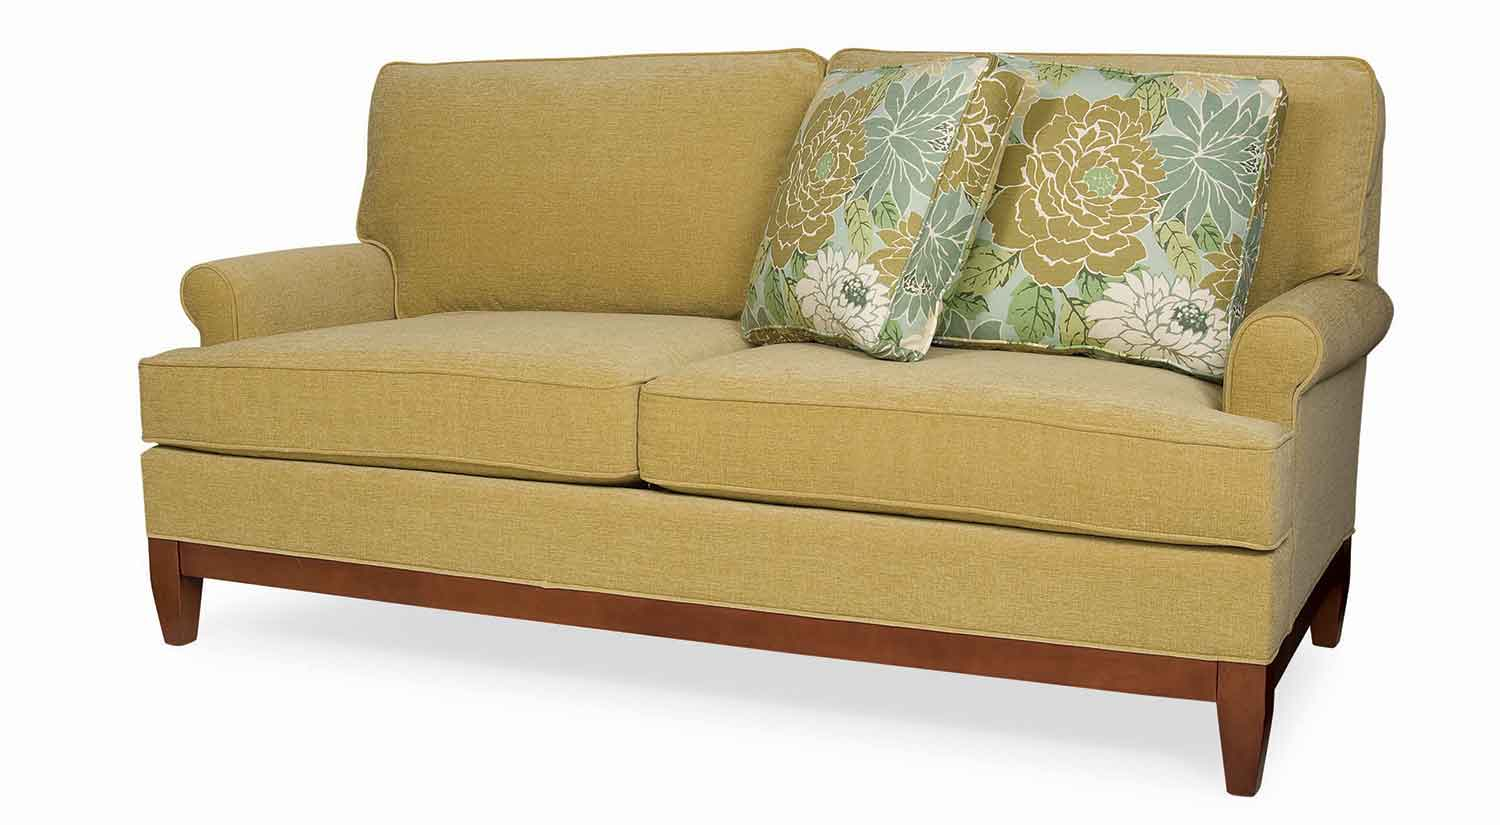 circle furniture camden apartment sofa small sofas boston rh circlefurniture com small scale sofas and loveseats sofas and loveseats for small spaces